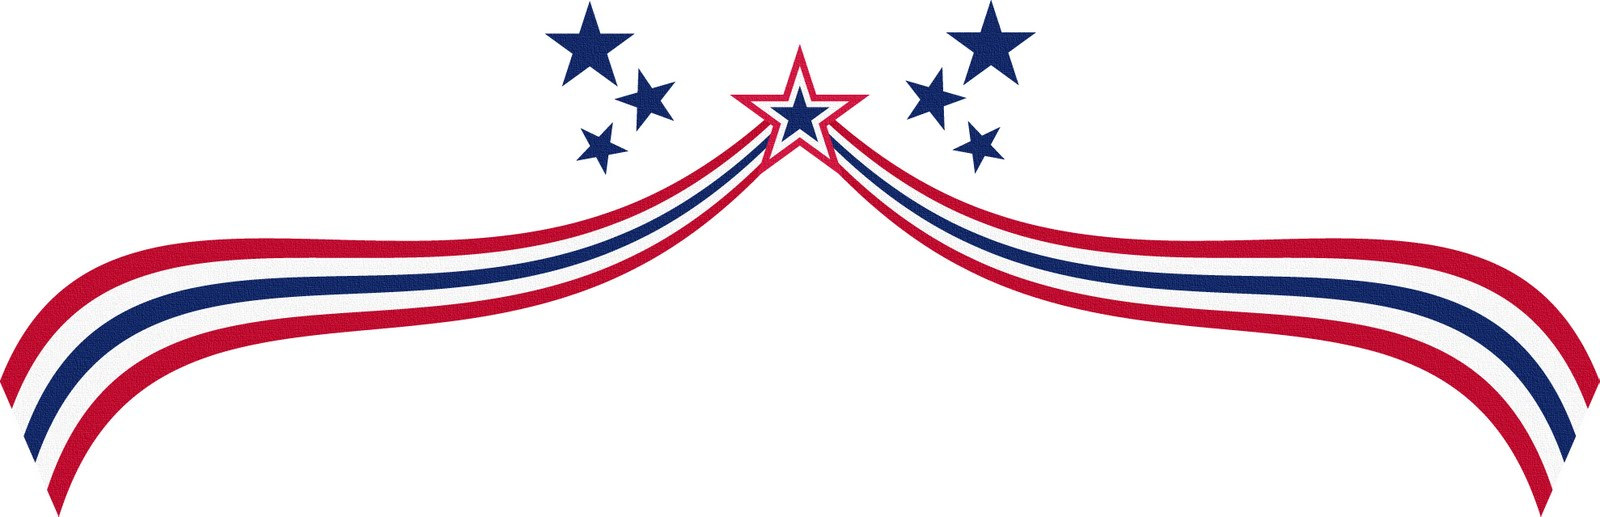 1600x517 Fourth Of July Fourth July Free 4th Of Clipart Independence Day